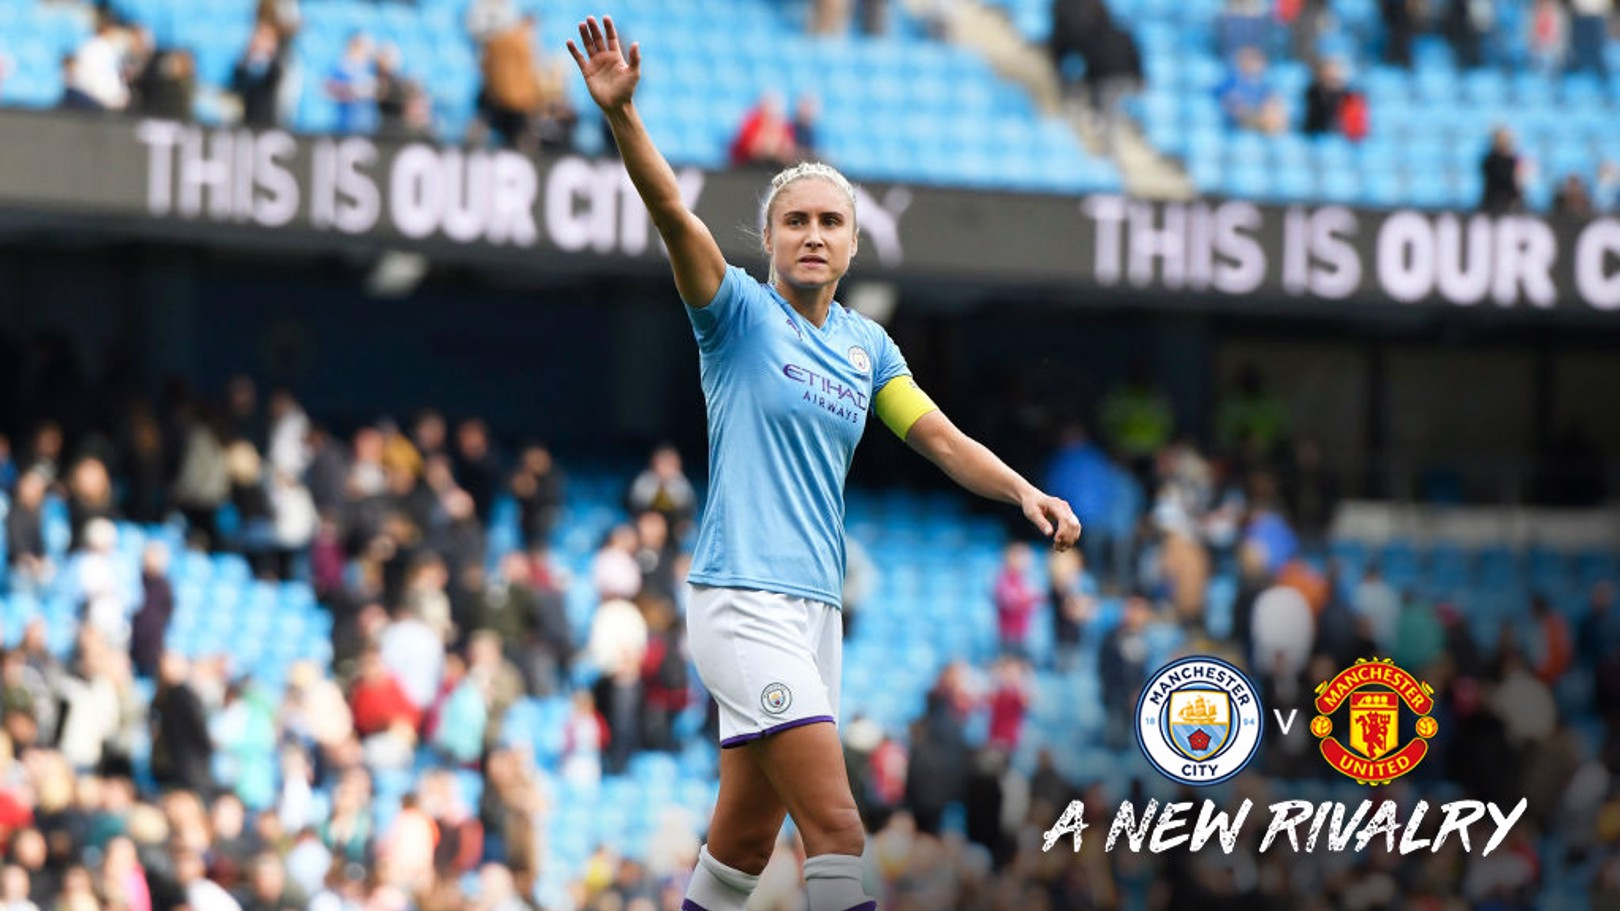 SKIPPER: Steph Houghton salutes the crowd at the Etihad.